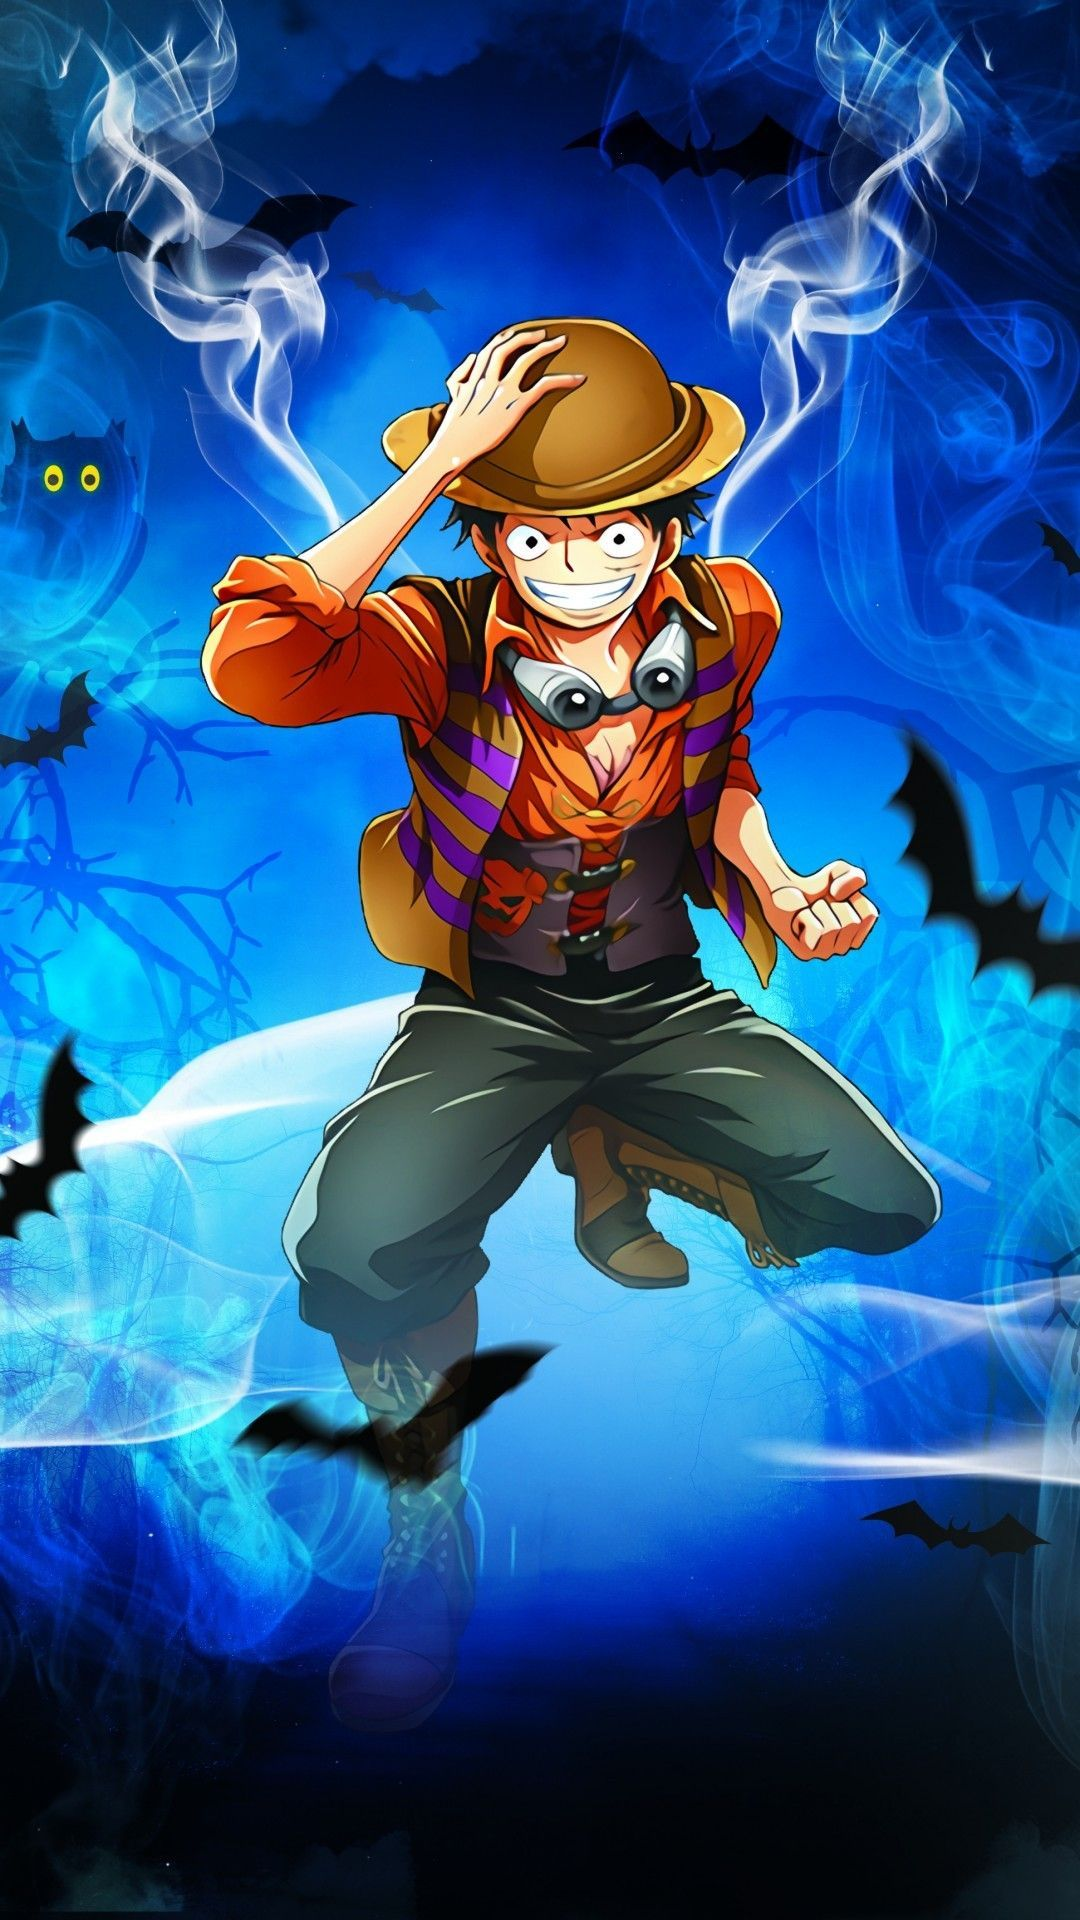 List Of Awesome Anime Wallpaper Iphone 7 Plus Monkey D Luffy Straw Hat Pirates One Piece Anime One Piece Hinh ảnh